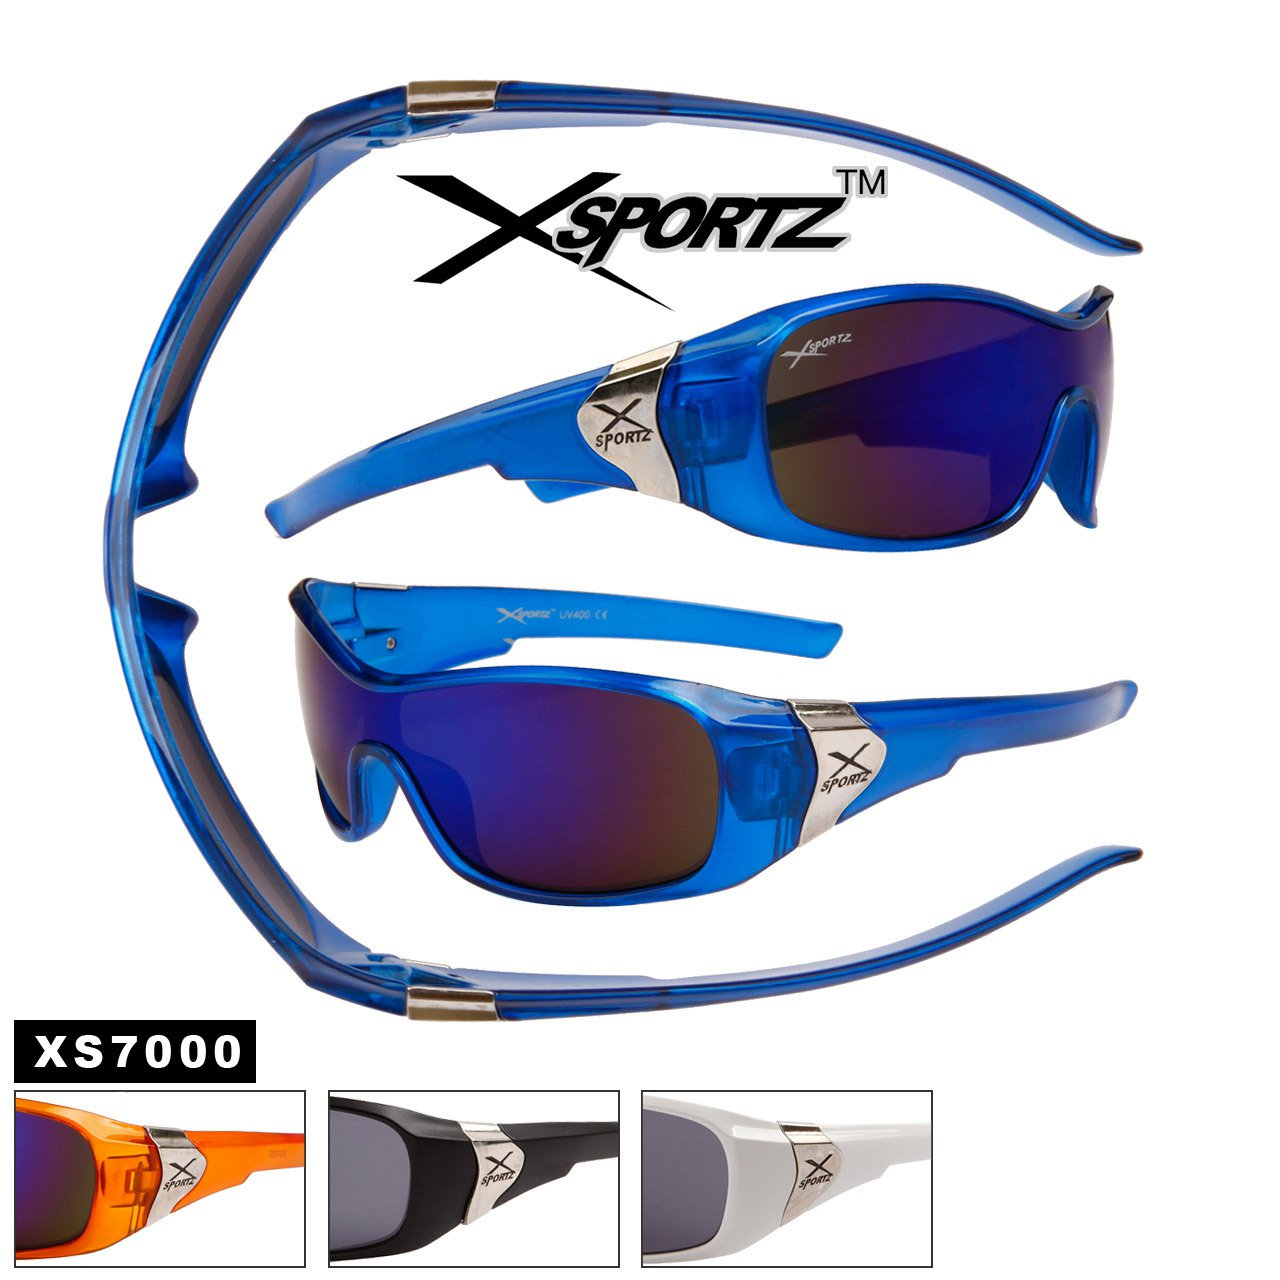 MEN'S DESIGNER INSPIRED BLUE SPORTY XSPORT SUNGLASSES